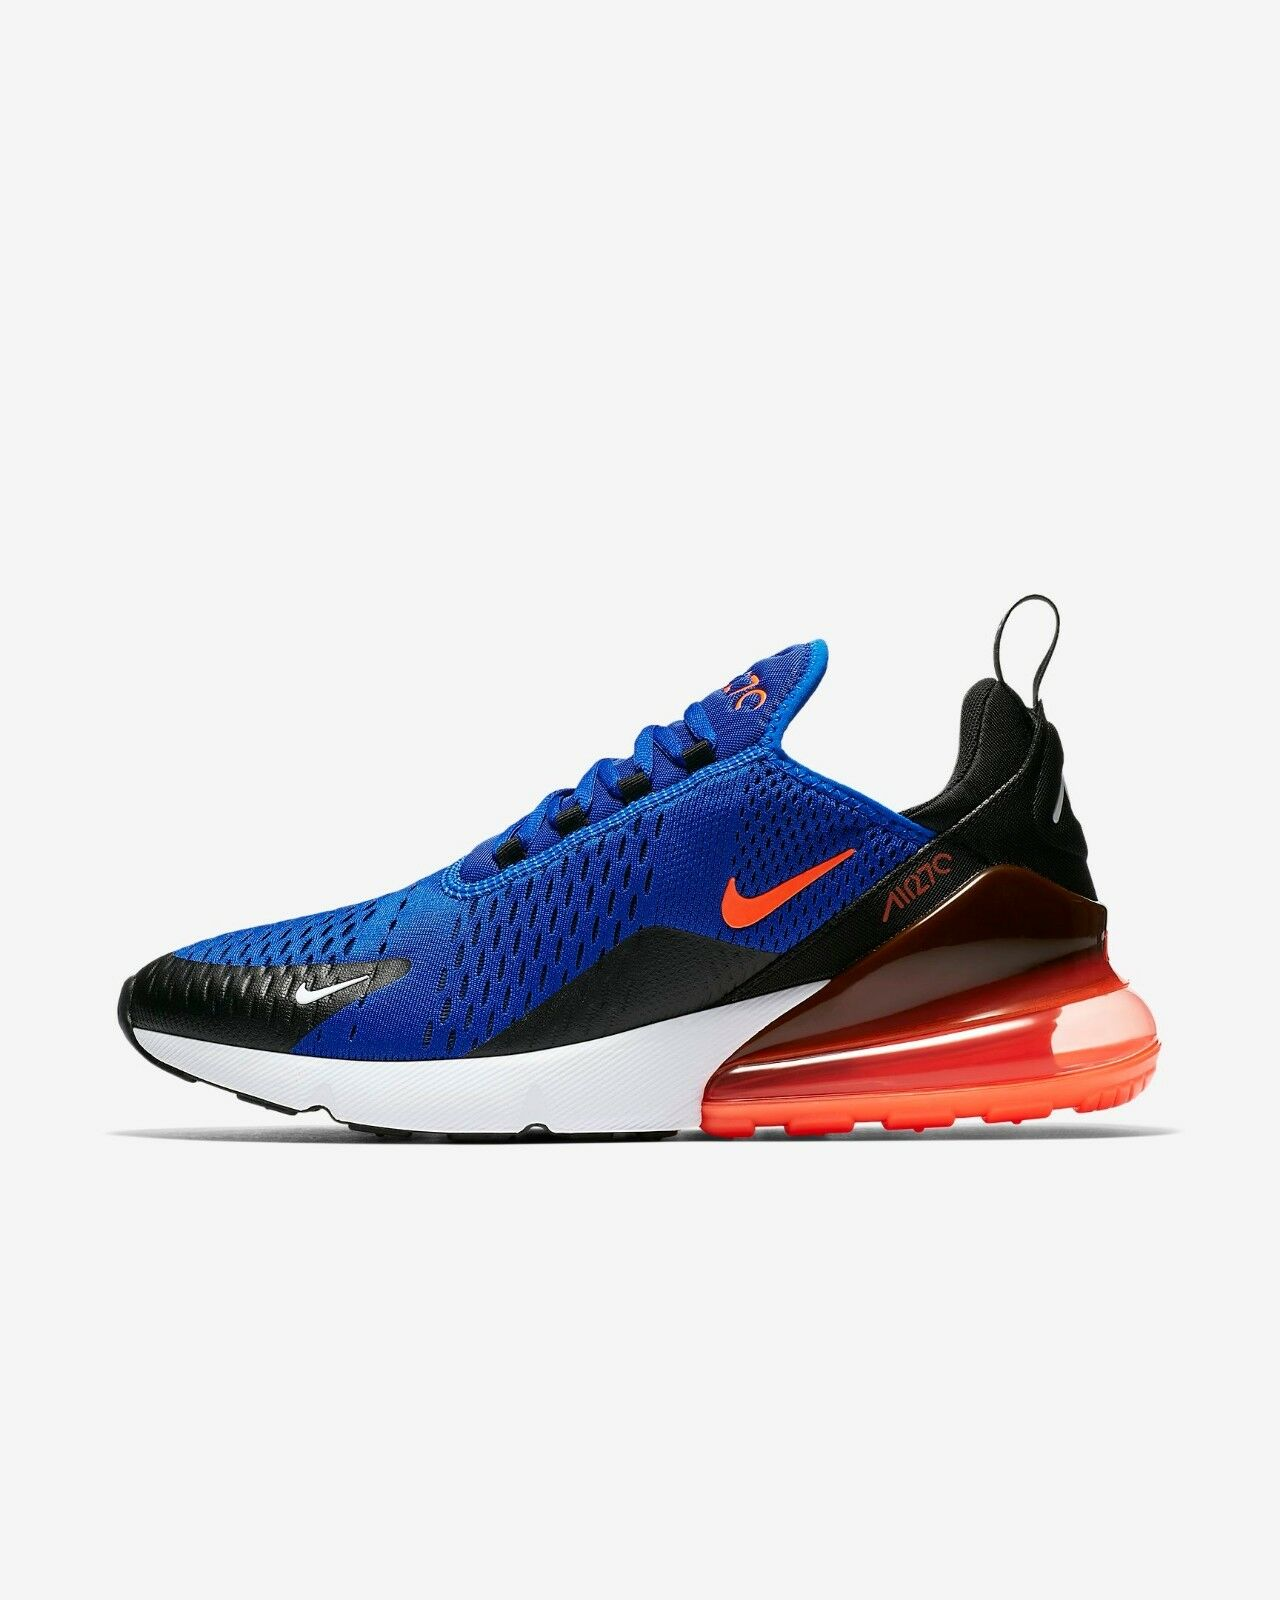 Men's Authentic Nike Air Max 270  Shoes Comfortable Great discount